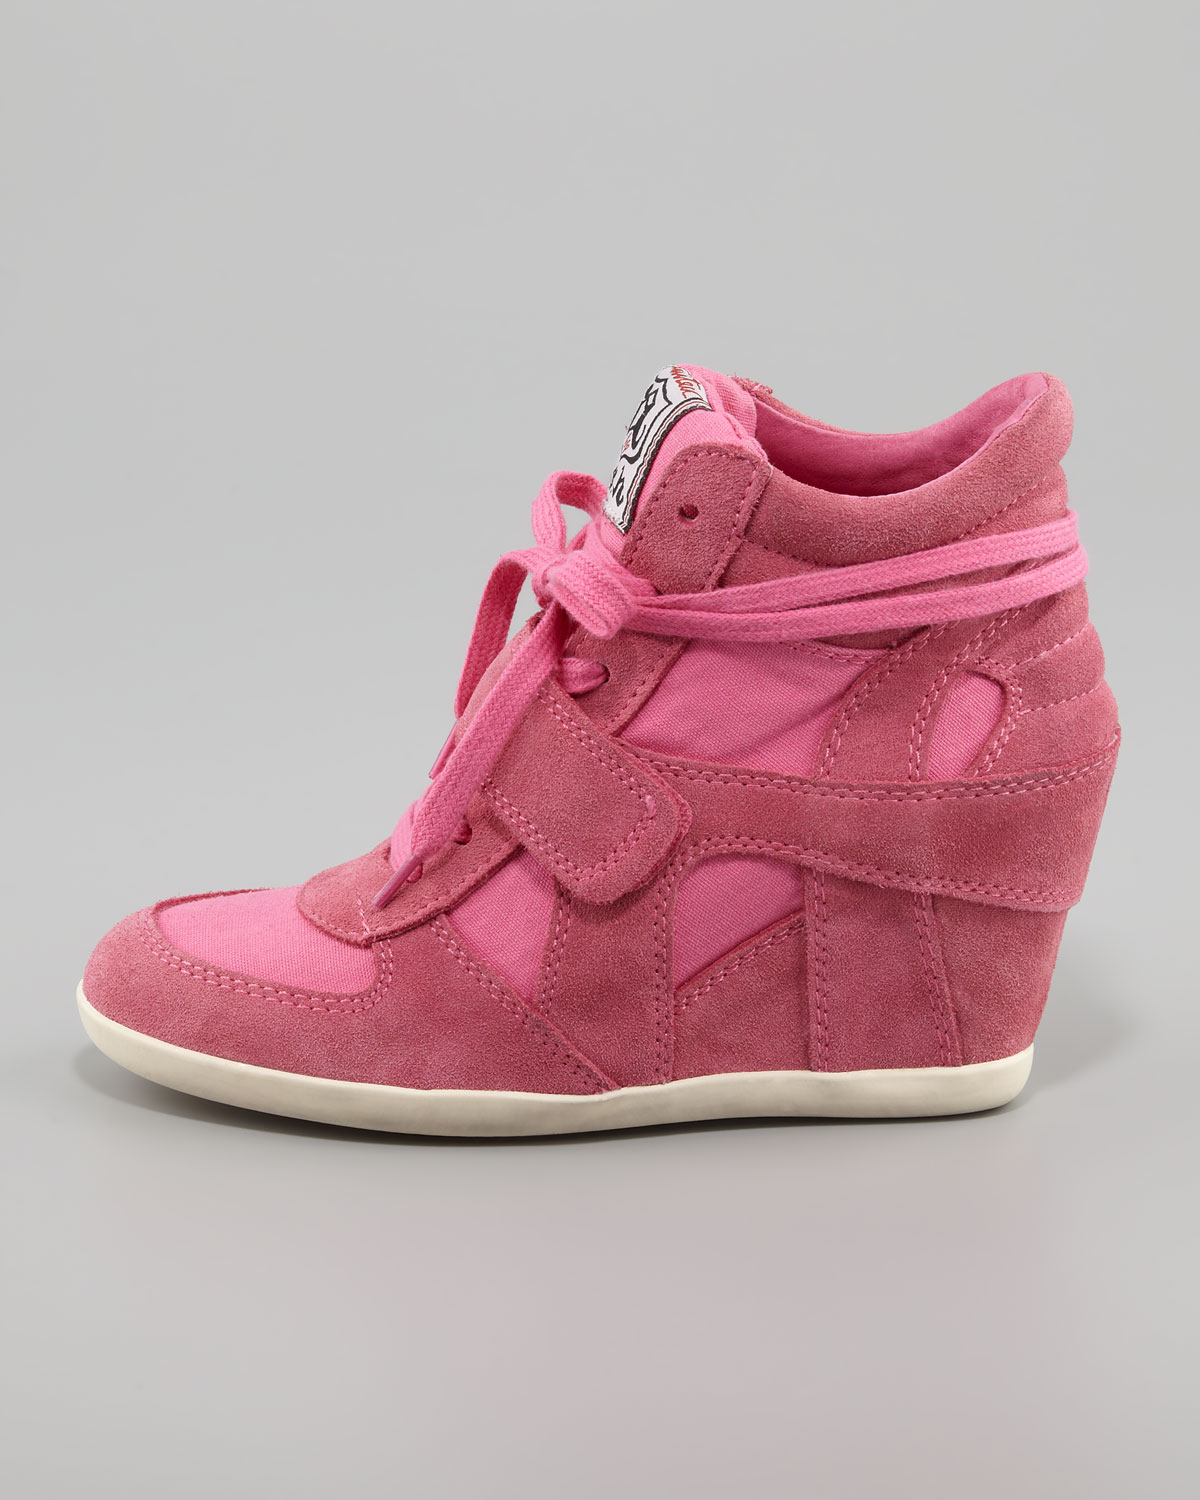 Lyst - Ash Bowie Suede Canvas Wedge Sneaker in Pink